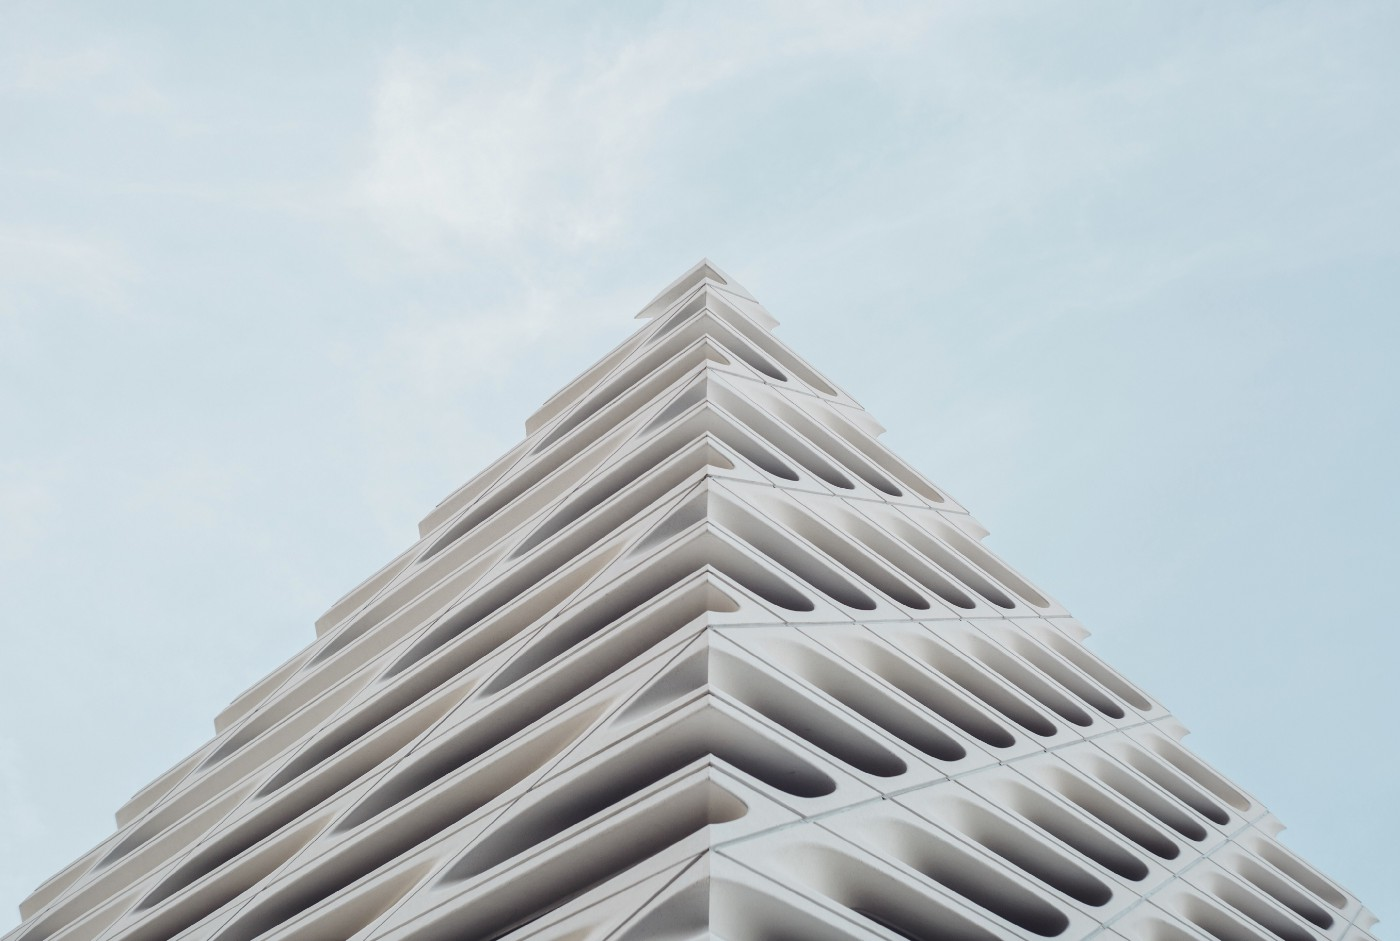 abstract view of a tall geometric building